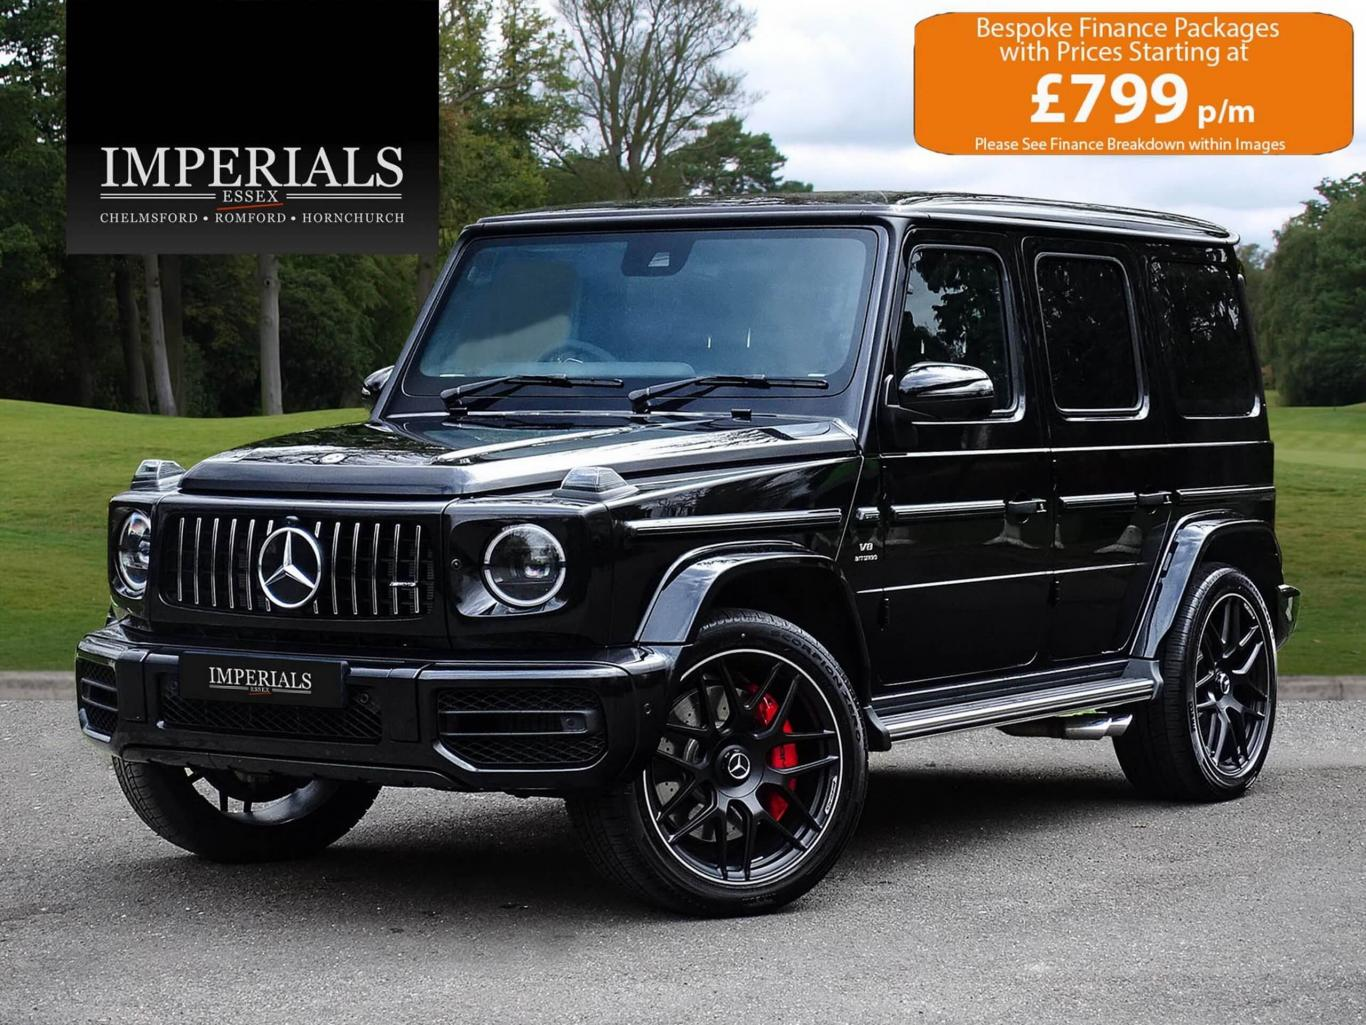 Wonderbaarlijk mercedes benz g63 amg 40 v8 new model vat q 9 speed 4x4 obsidian ZF-39